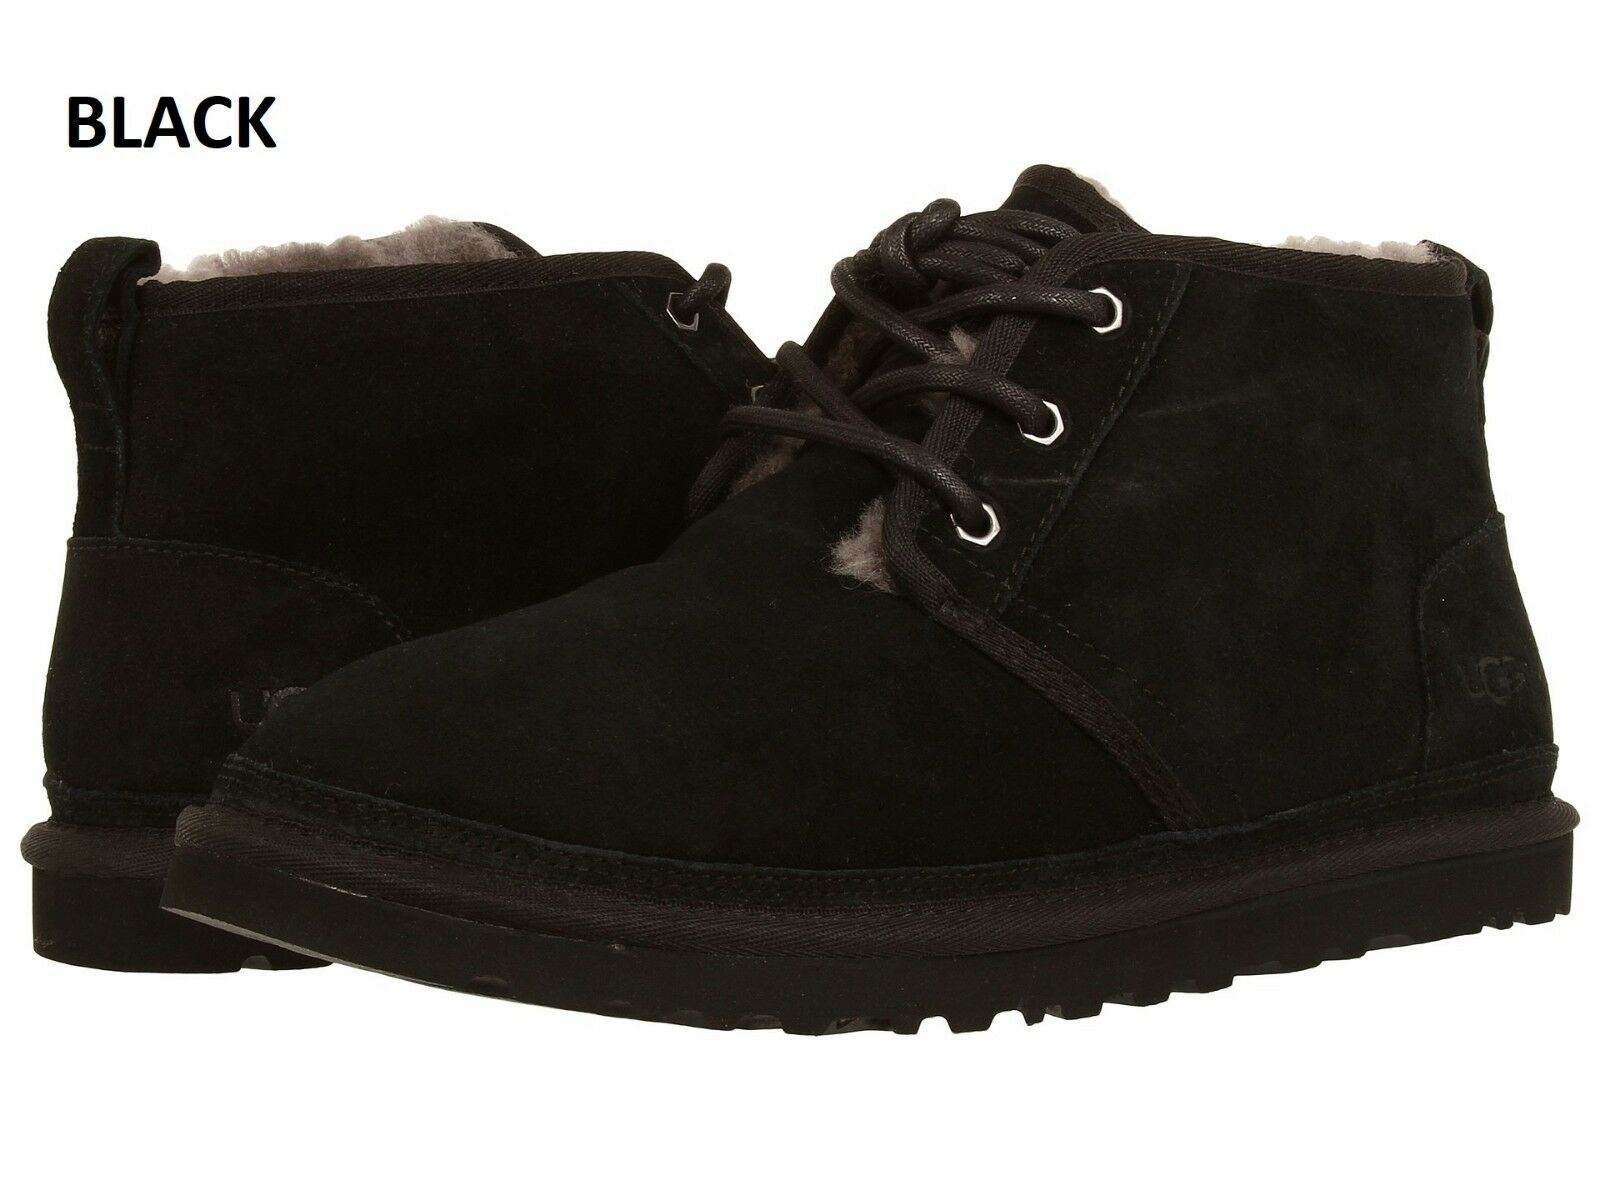 UGG Men's Neumel Chukka  Boots Casual Fashion Shoes Suede Black Chestnut 3236 1